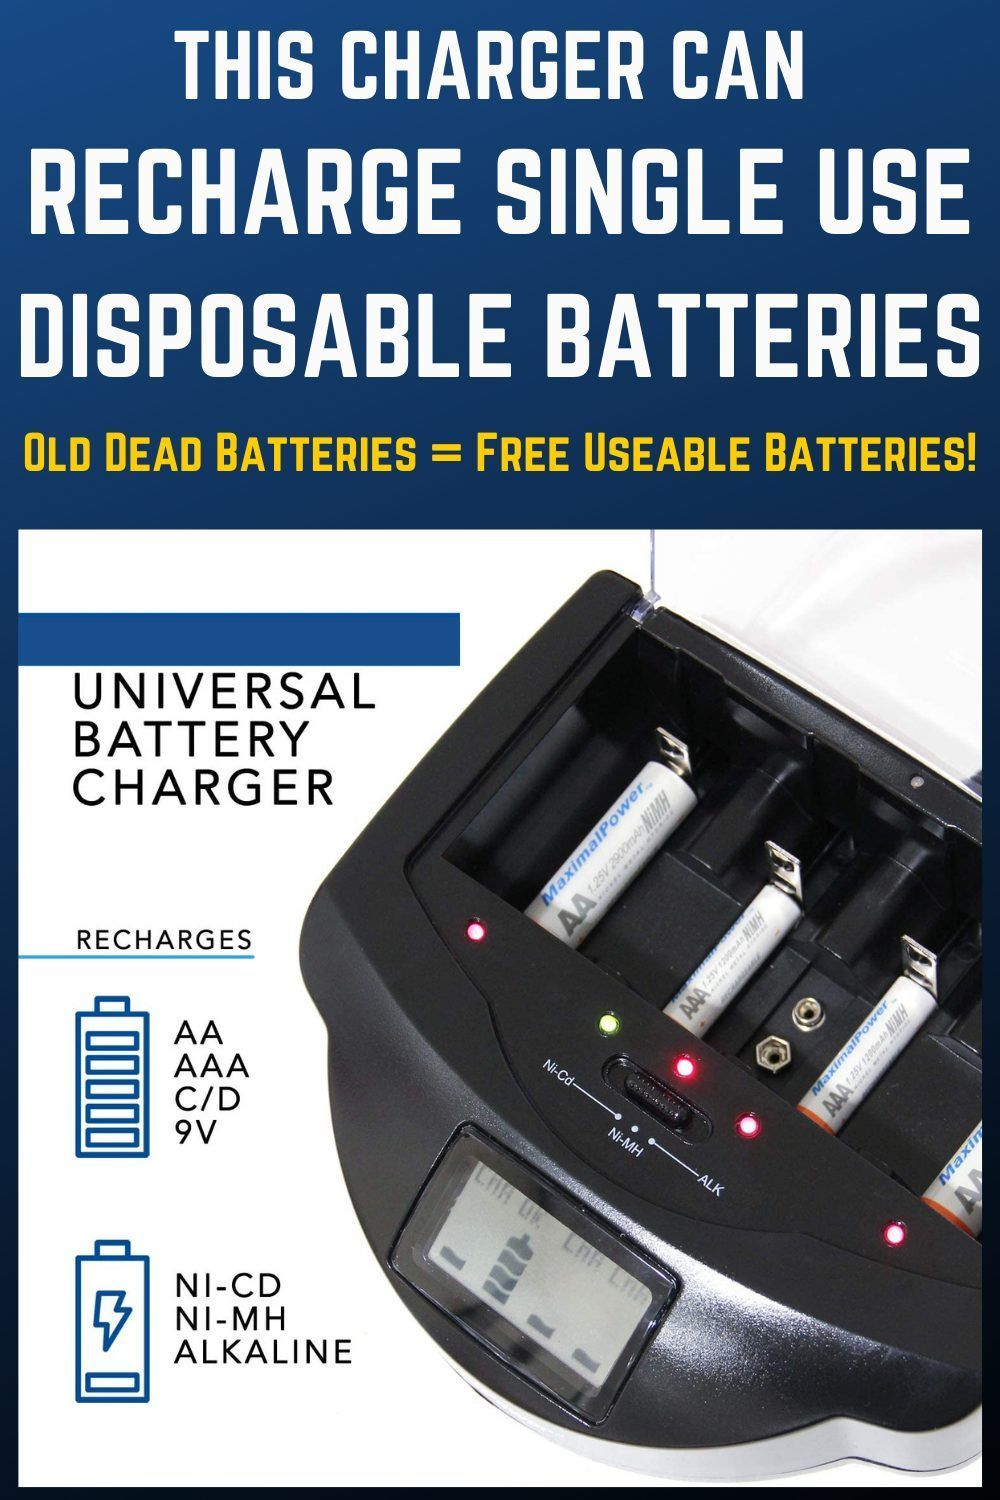 This Charger Can Recharge Disposable Batteries Learn More Save Money In 2021 Gadgets And Gizmos Disposable Recharge